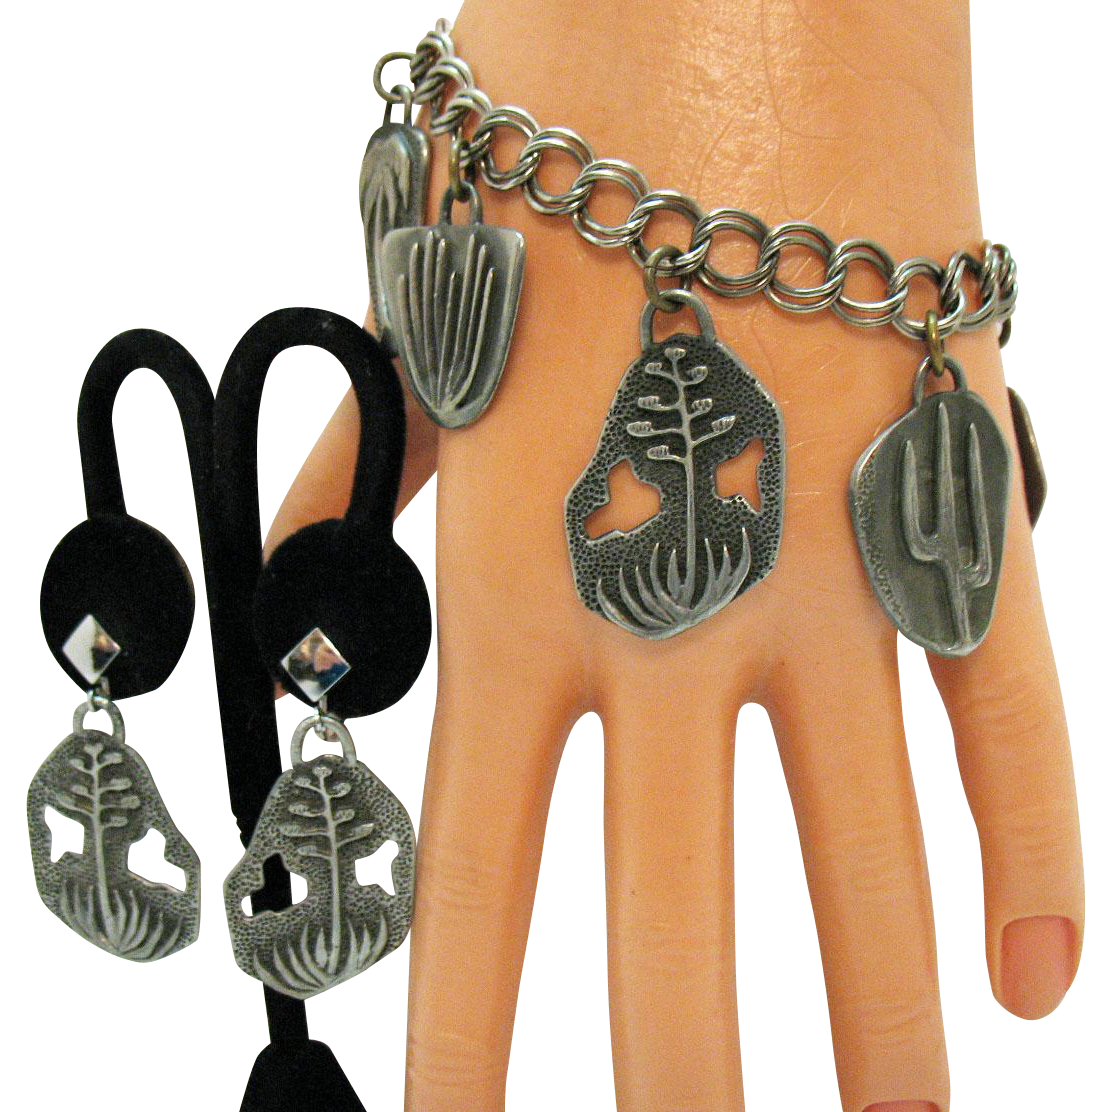 Rare Signed Ray Graves Gra-Wun Vintage Pewter Charm Bracelet Earrings Set Southwestern Mid Century Naturalistic